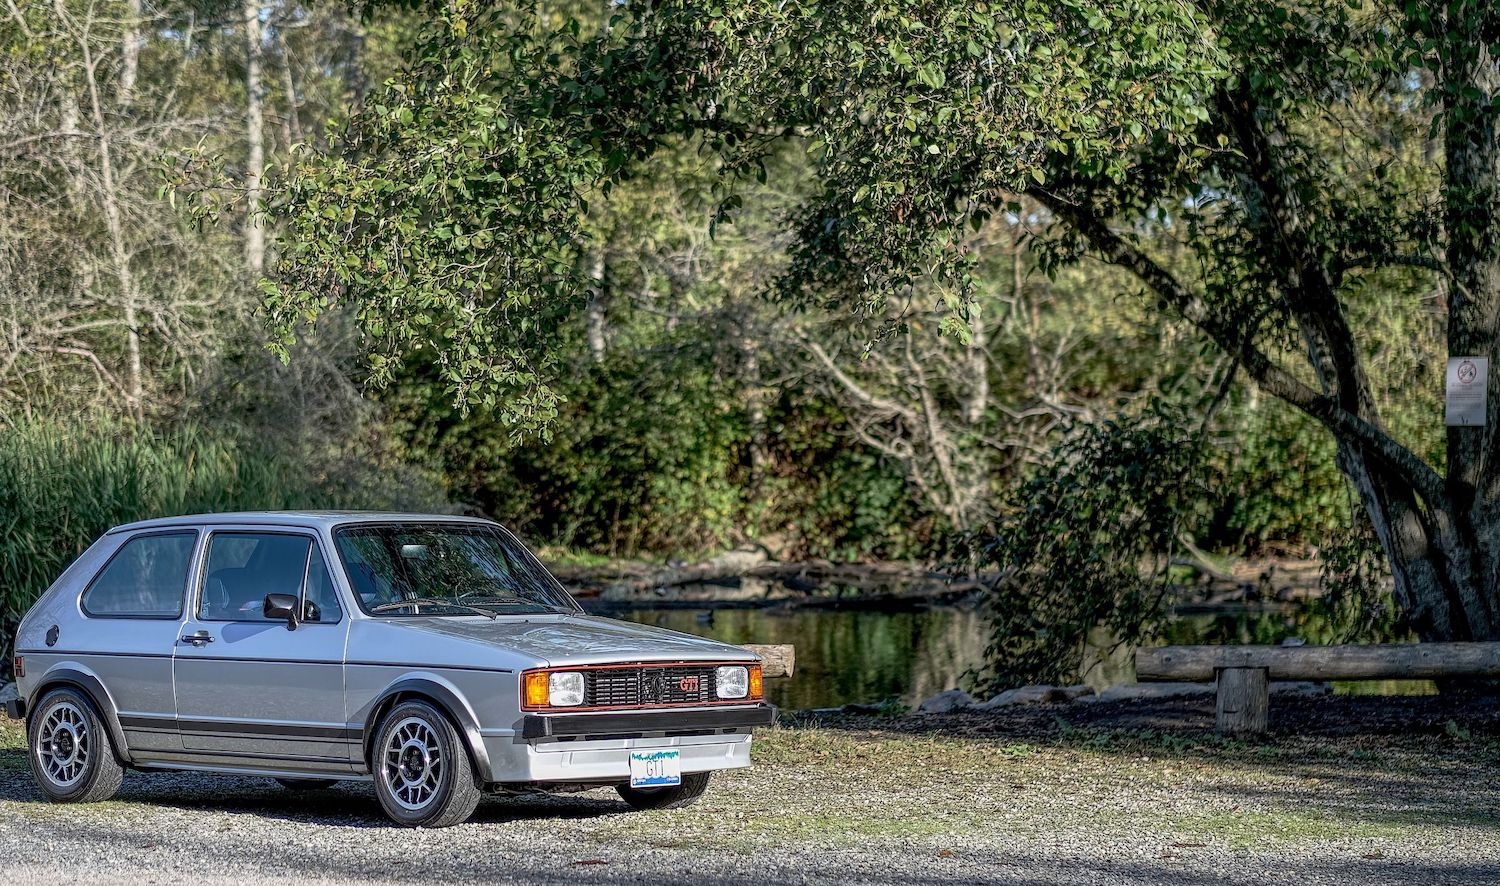 1983 Volkswagen Rabbit GTI front three-quarter